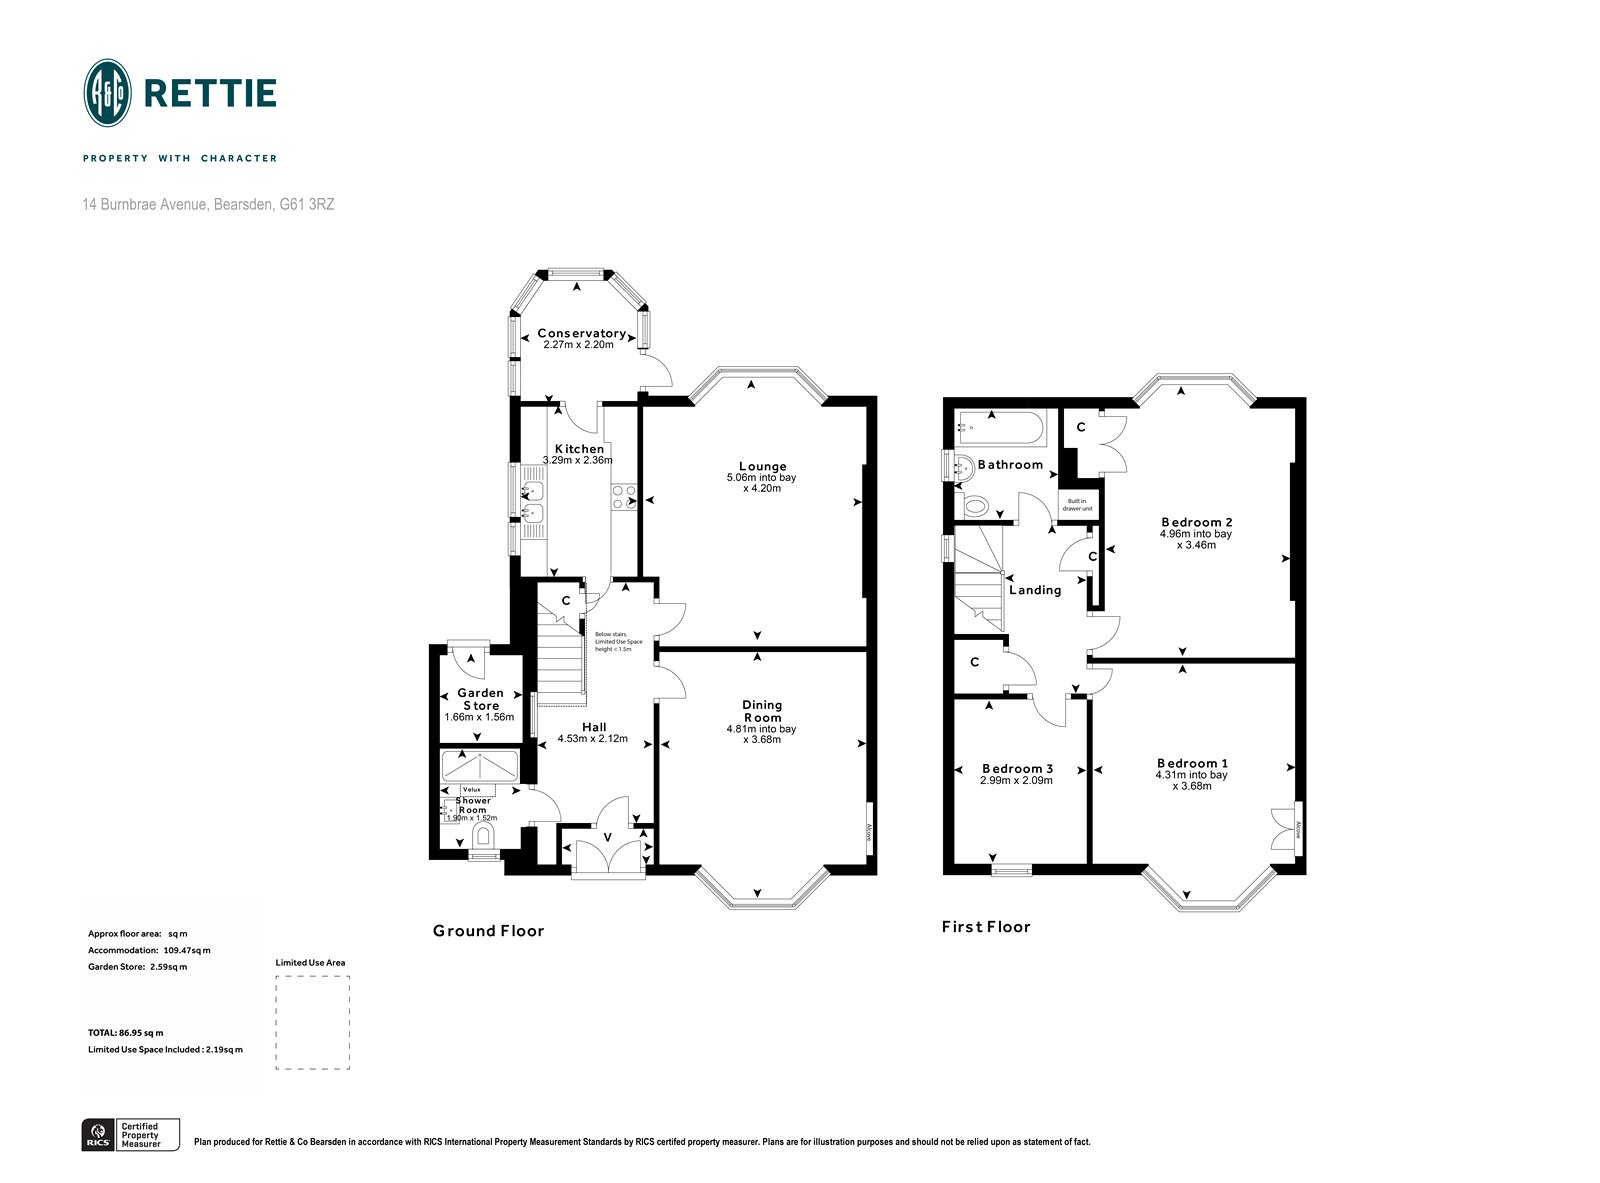 Floorplans for Burnbrae Avenue, Bearsden, Glasgow, G61